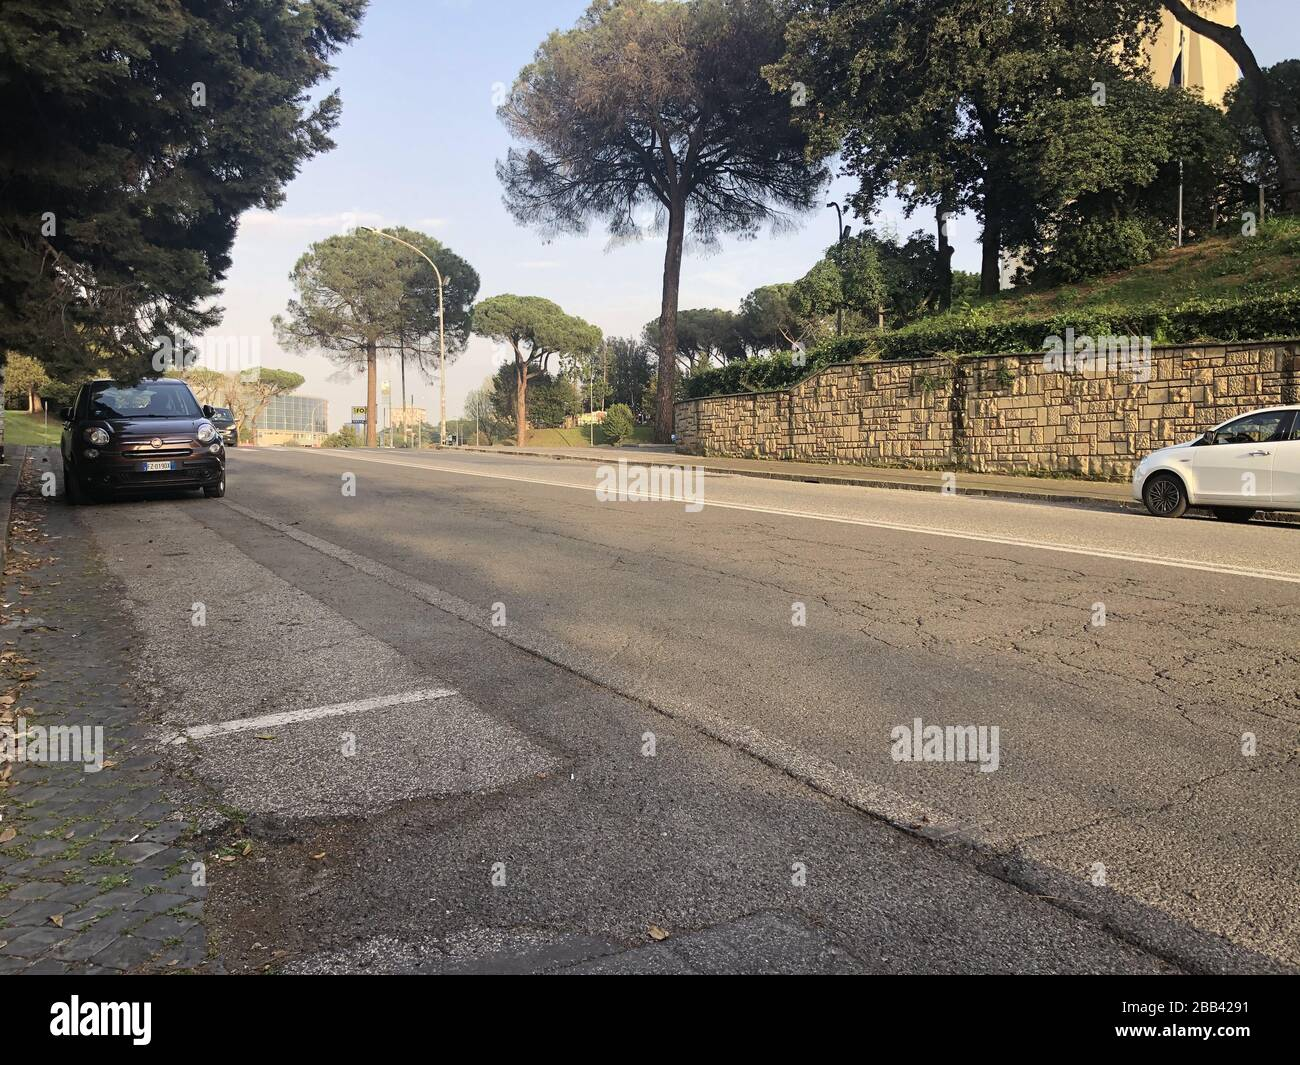 ROME, ITALY - MARCH 29, 2020: A view of a street during quarantine amid the COVID-19 pandemic. On March 8, 2020, the Italian government ordered to close all the museums, archeological sites and cultural institutions; starting from March 12, the country is on full lockdown with all shops, bars and restaurants closed, except for grocery stores and pharmacies. Walking outside is prohibited with certain exceptions. Vera Shcherbakova/TASS Stock Photo